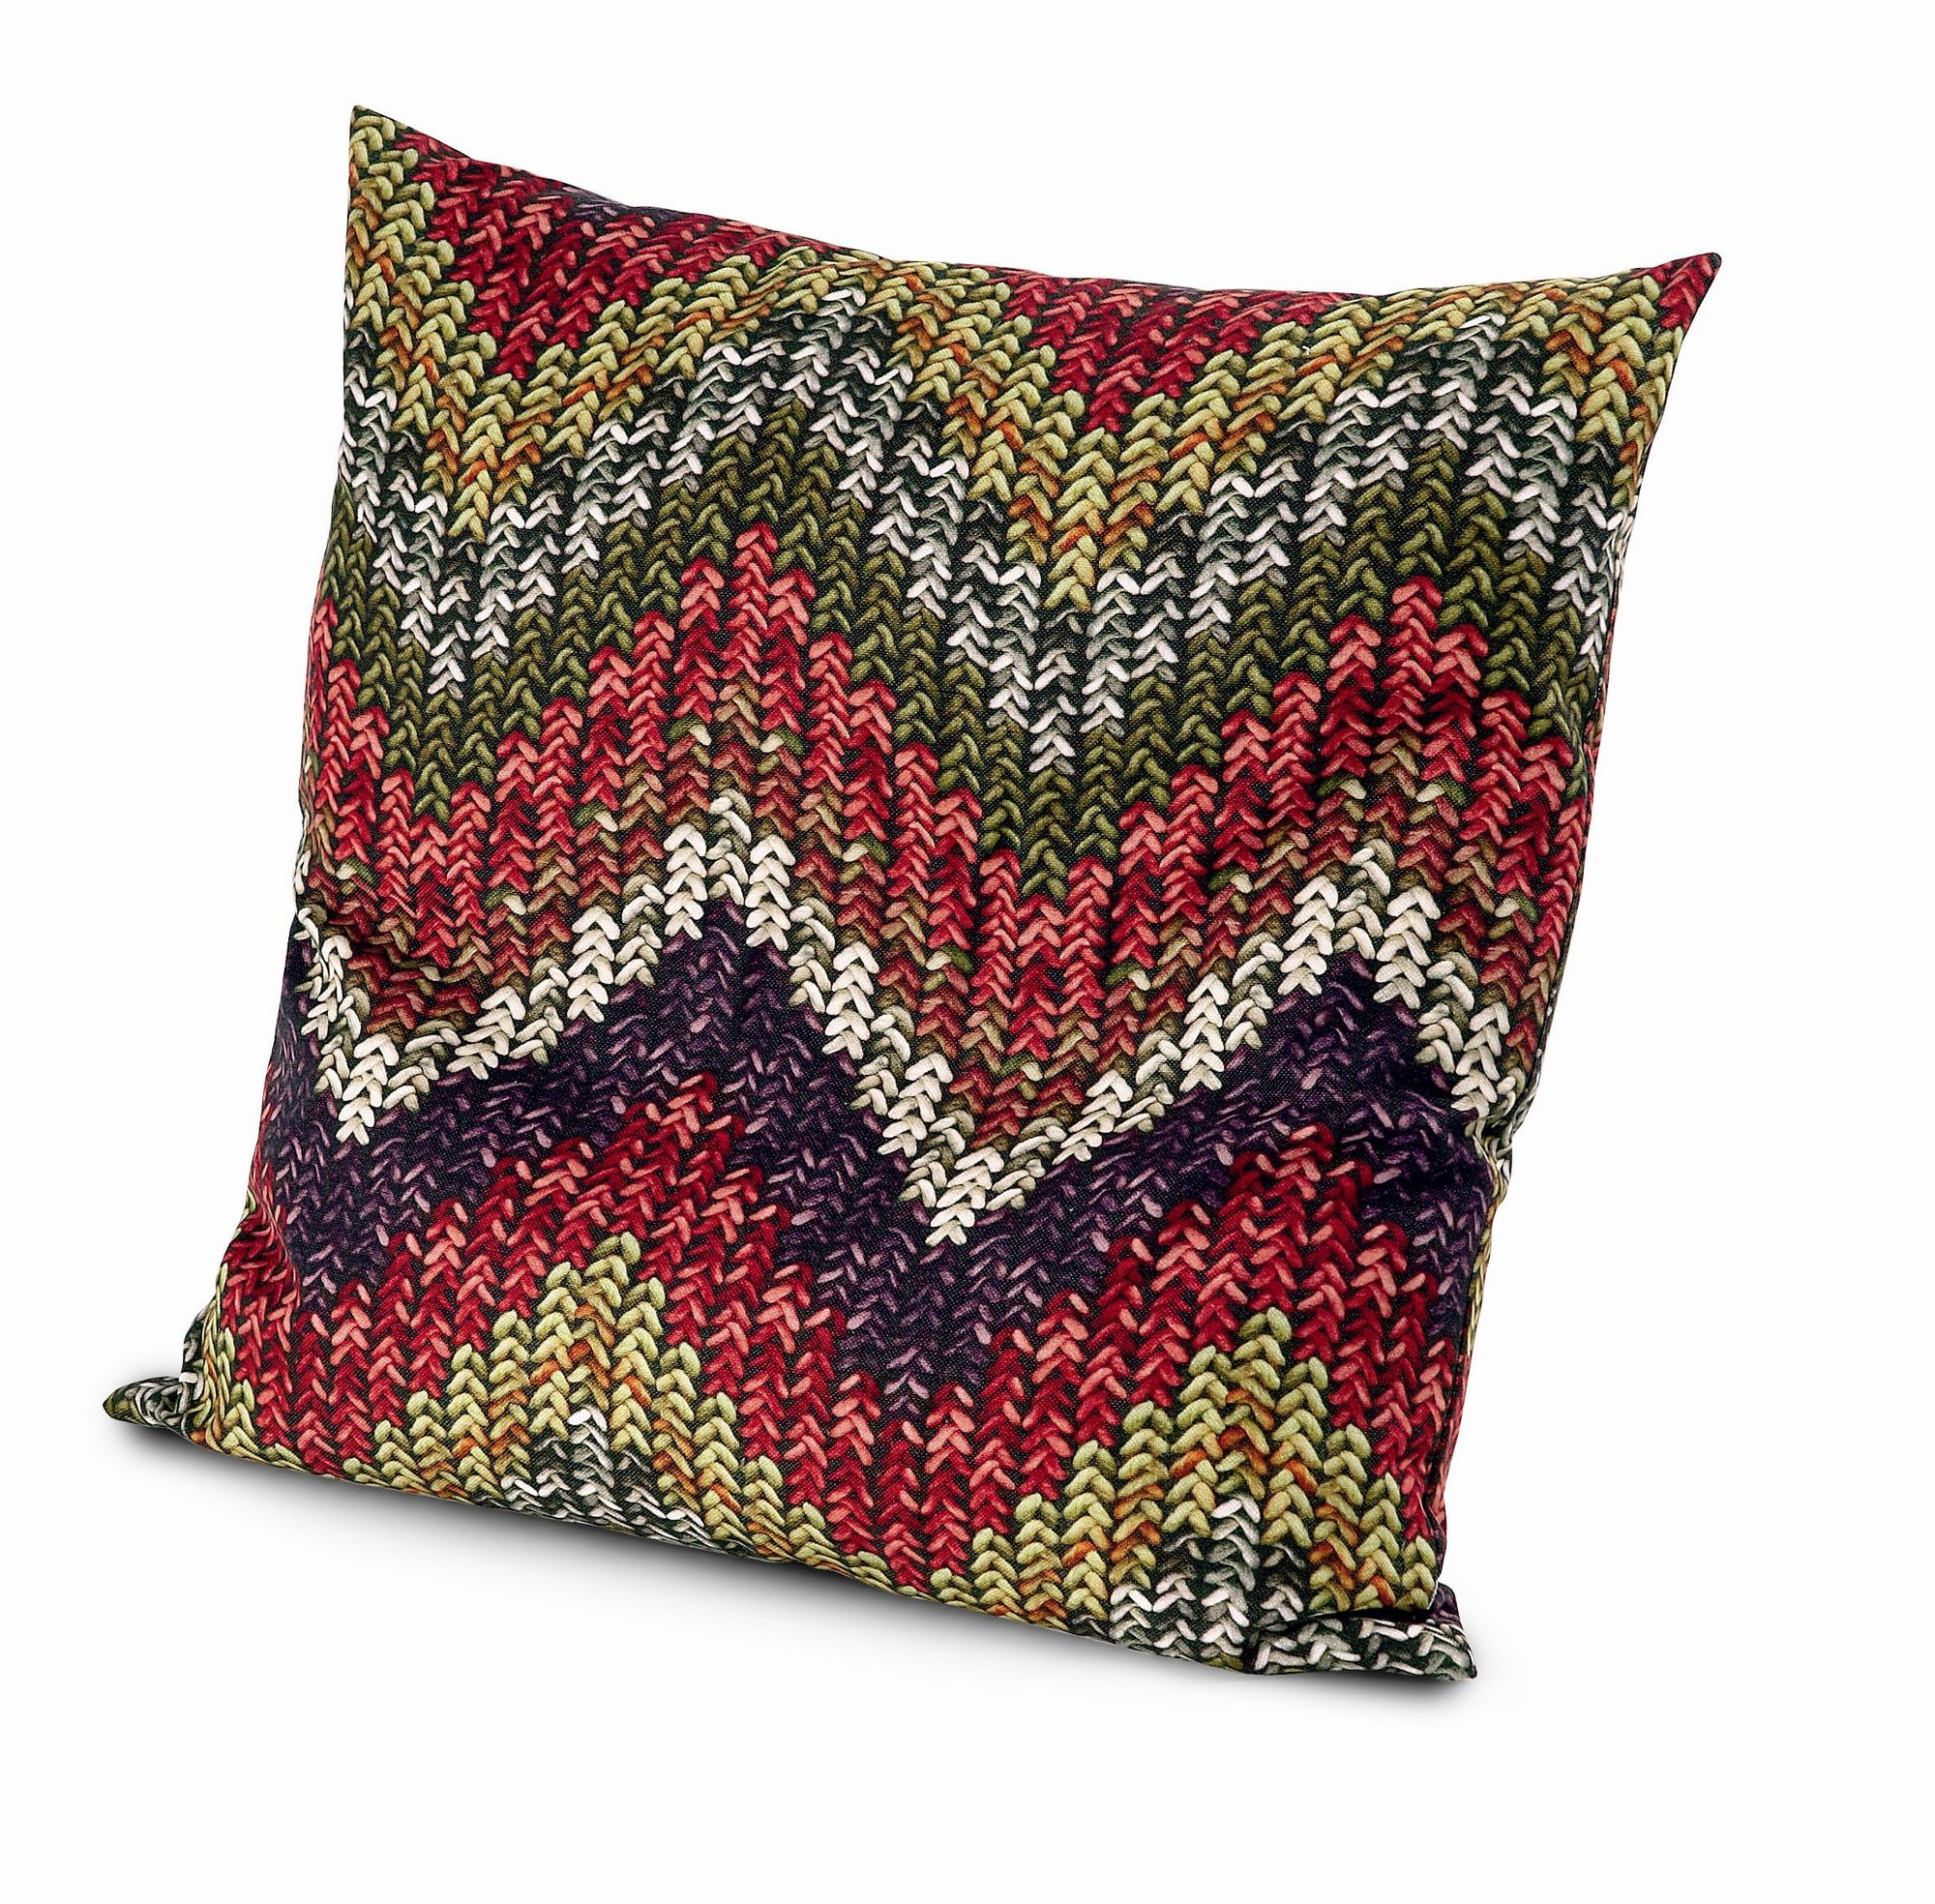 pottery kids pillow collaboration cool pillows pompomdaisybedding for margherita pbkmargheritamissoni the missoni hive barn